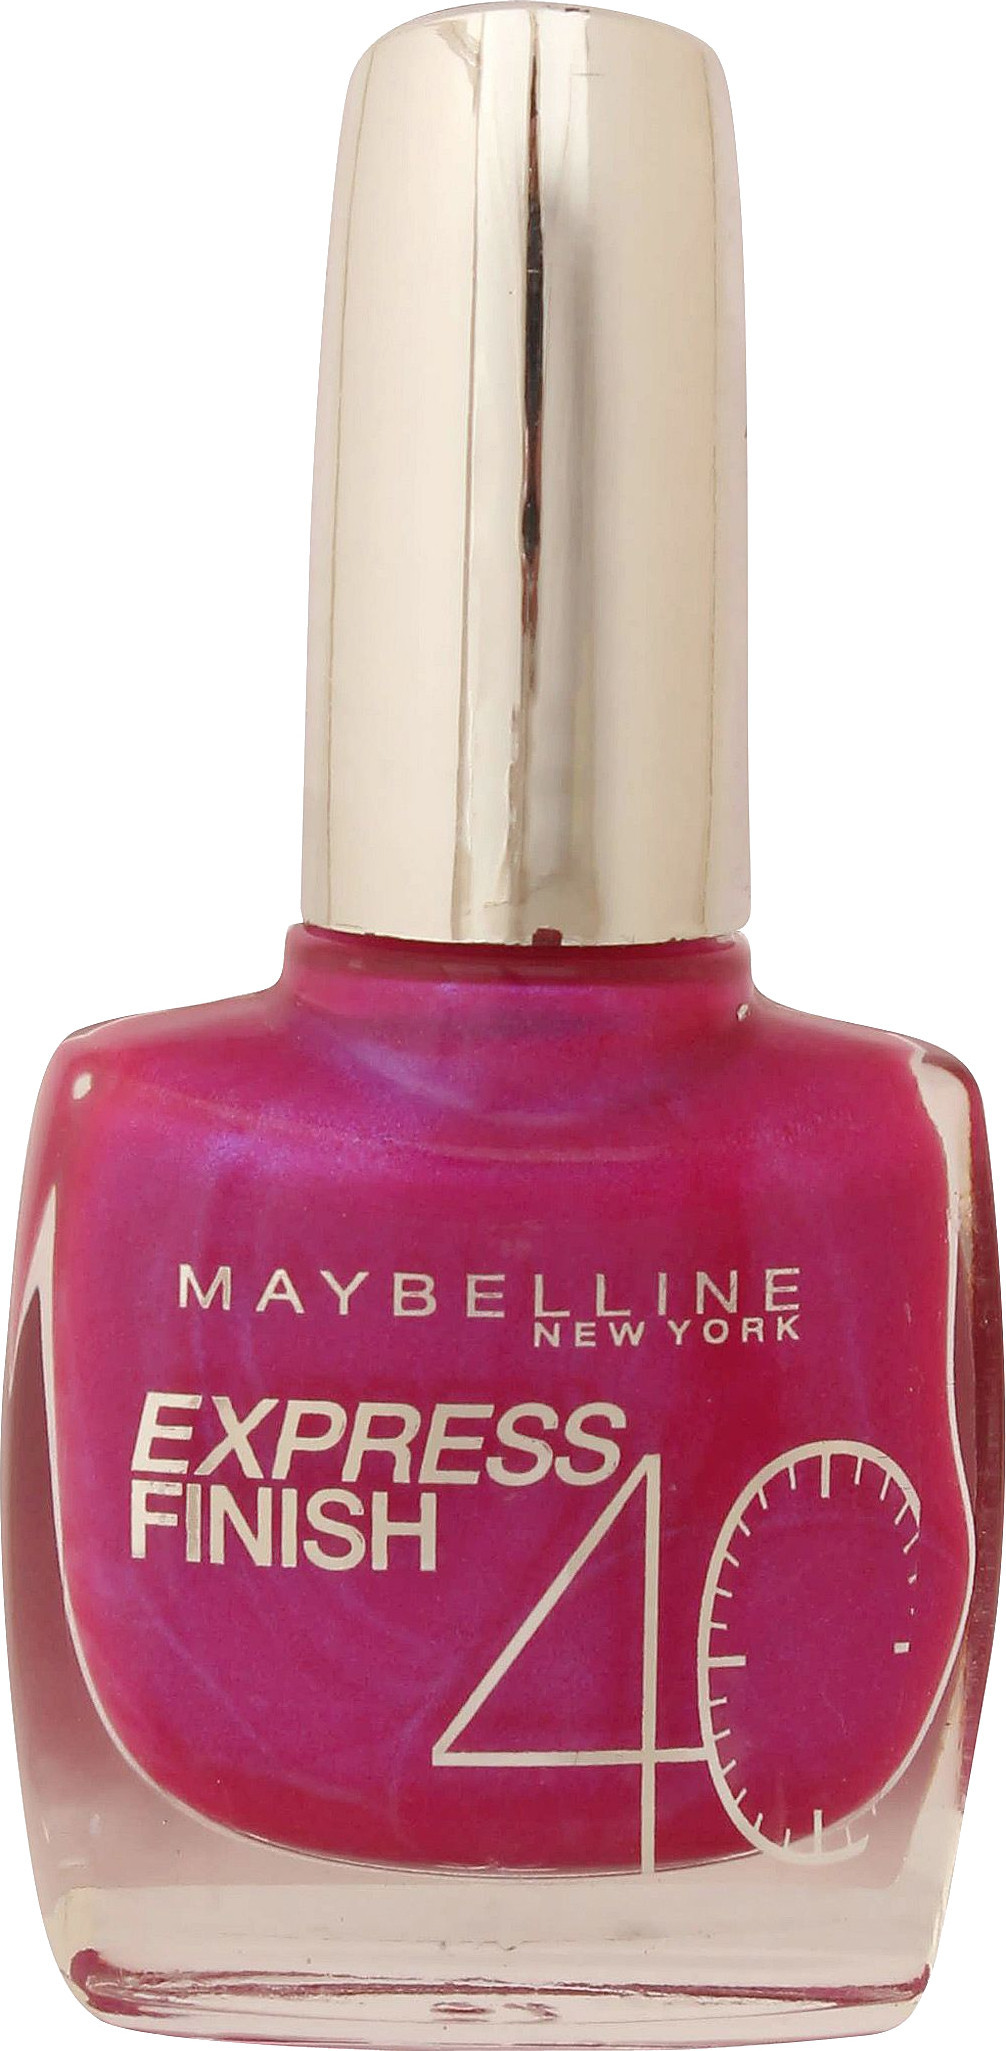 Maybelline Price List In India Buy Maybelline Online At Best Price In India Bechdo In